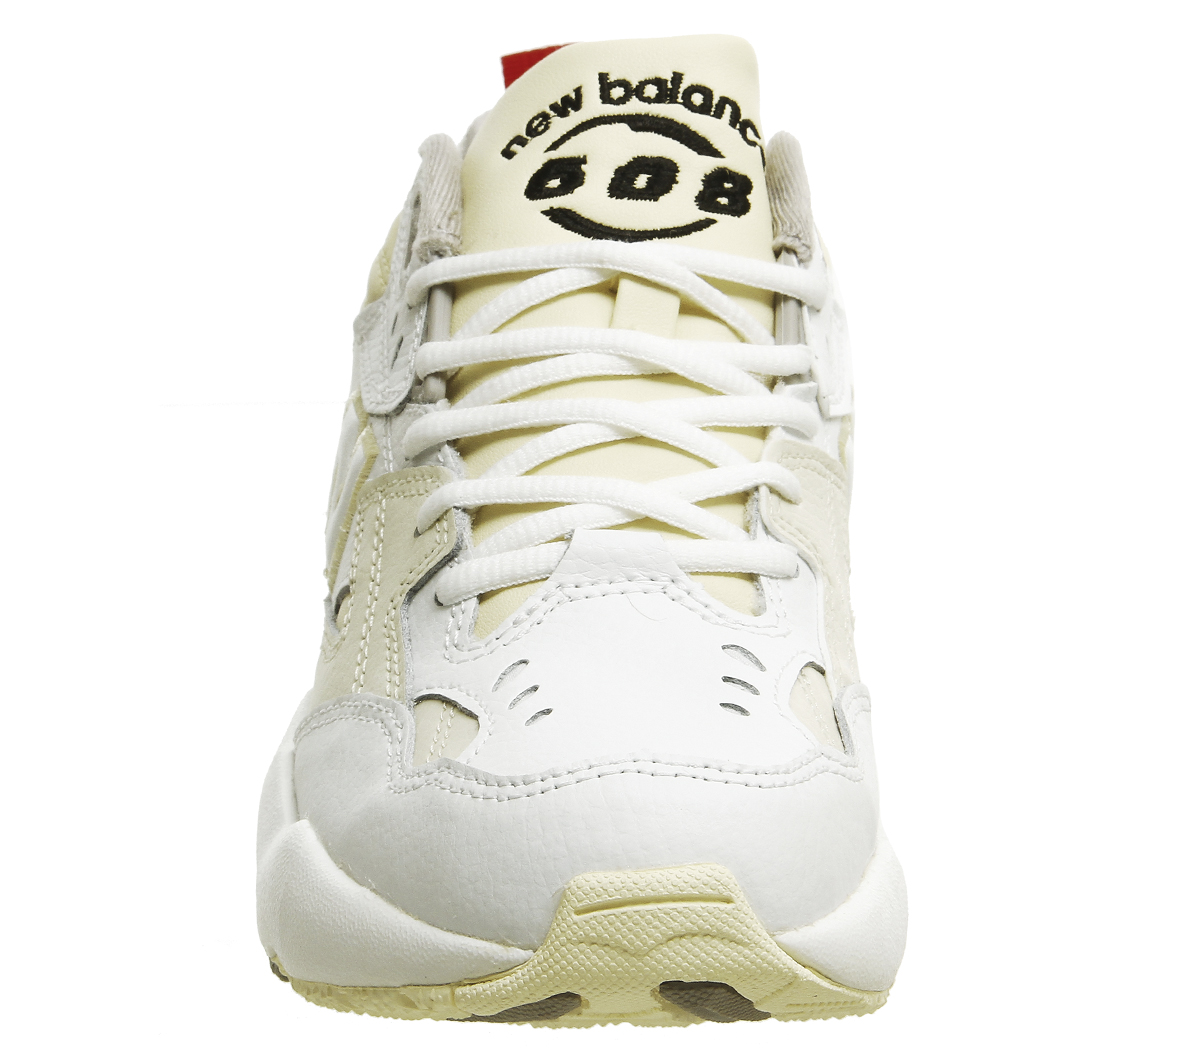 bc6e3c0315f5a Womens New Balance 608 Trainers White Cream Trainers Shoes